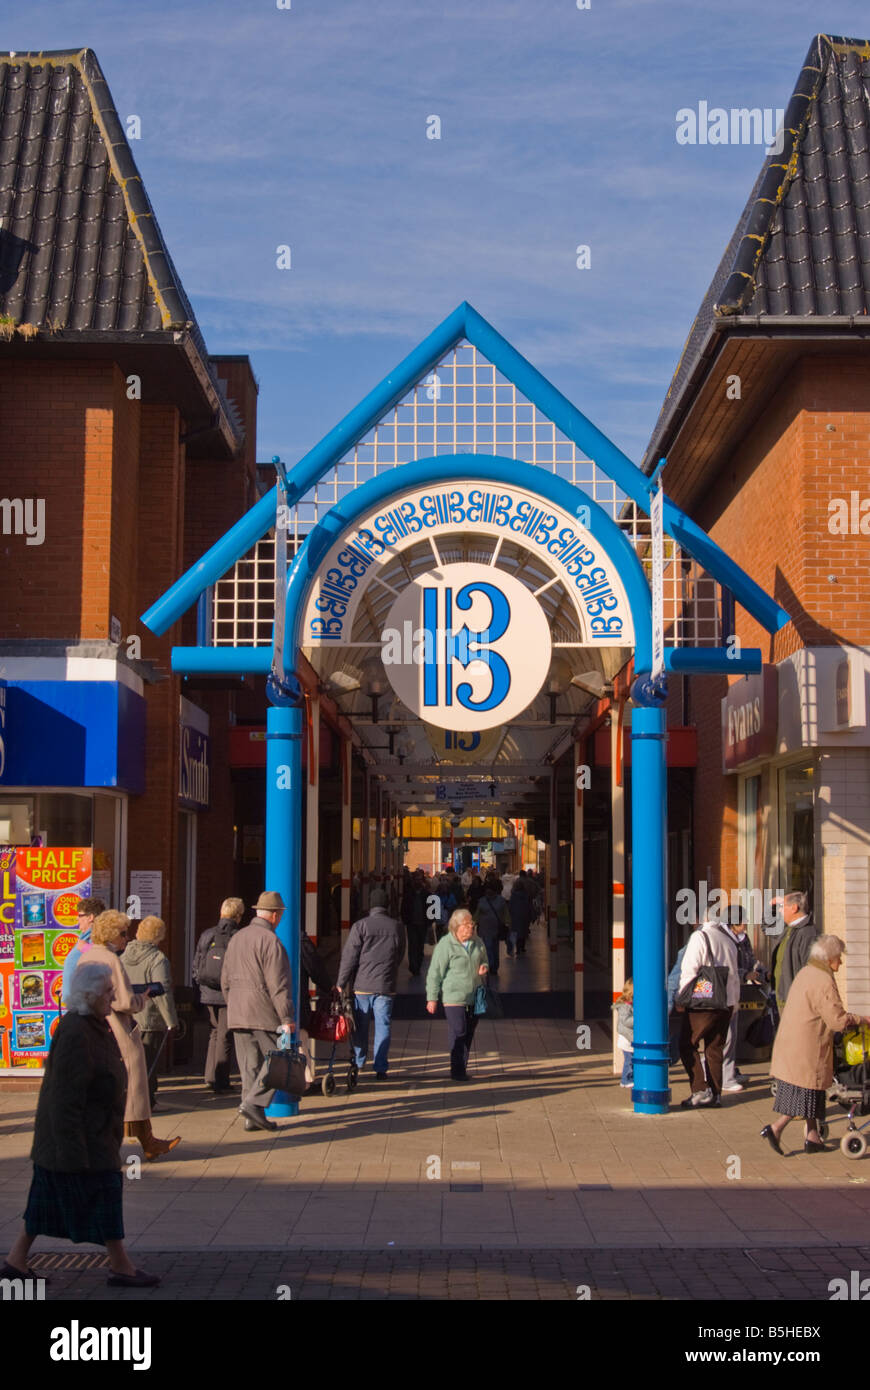 Entrance from the high street to the Britten Centre shopping precinct in Lowestoft Suffolk Uk - Stock Image